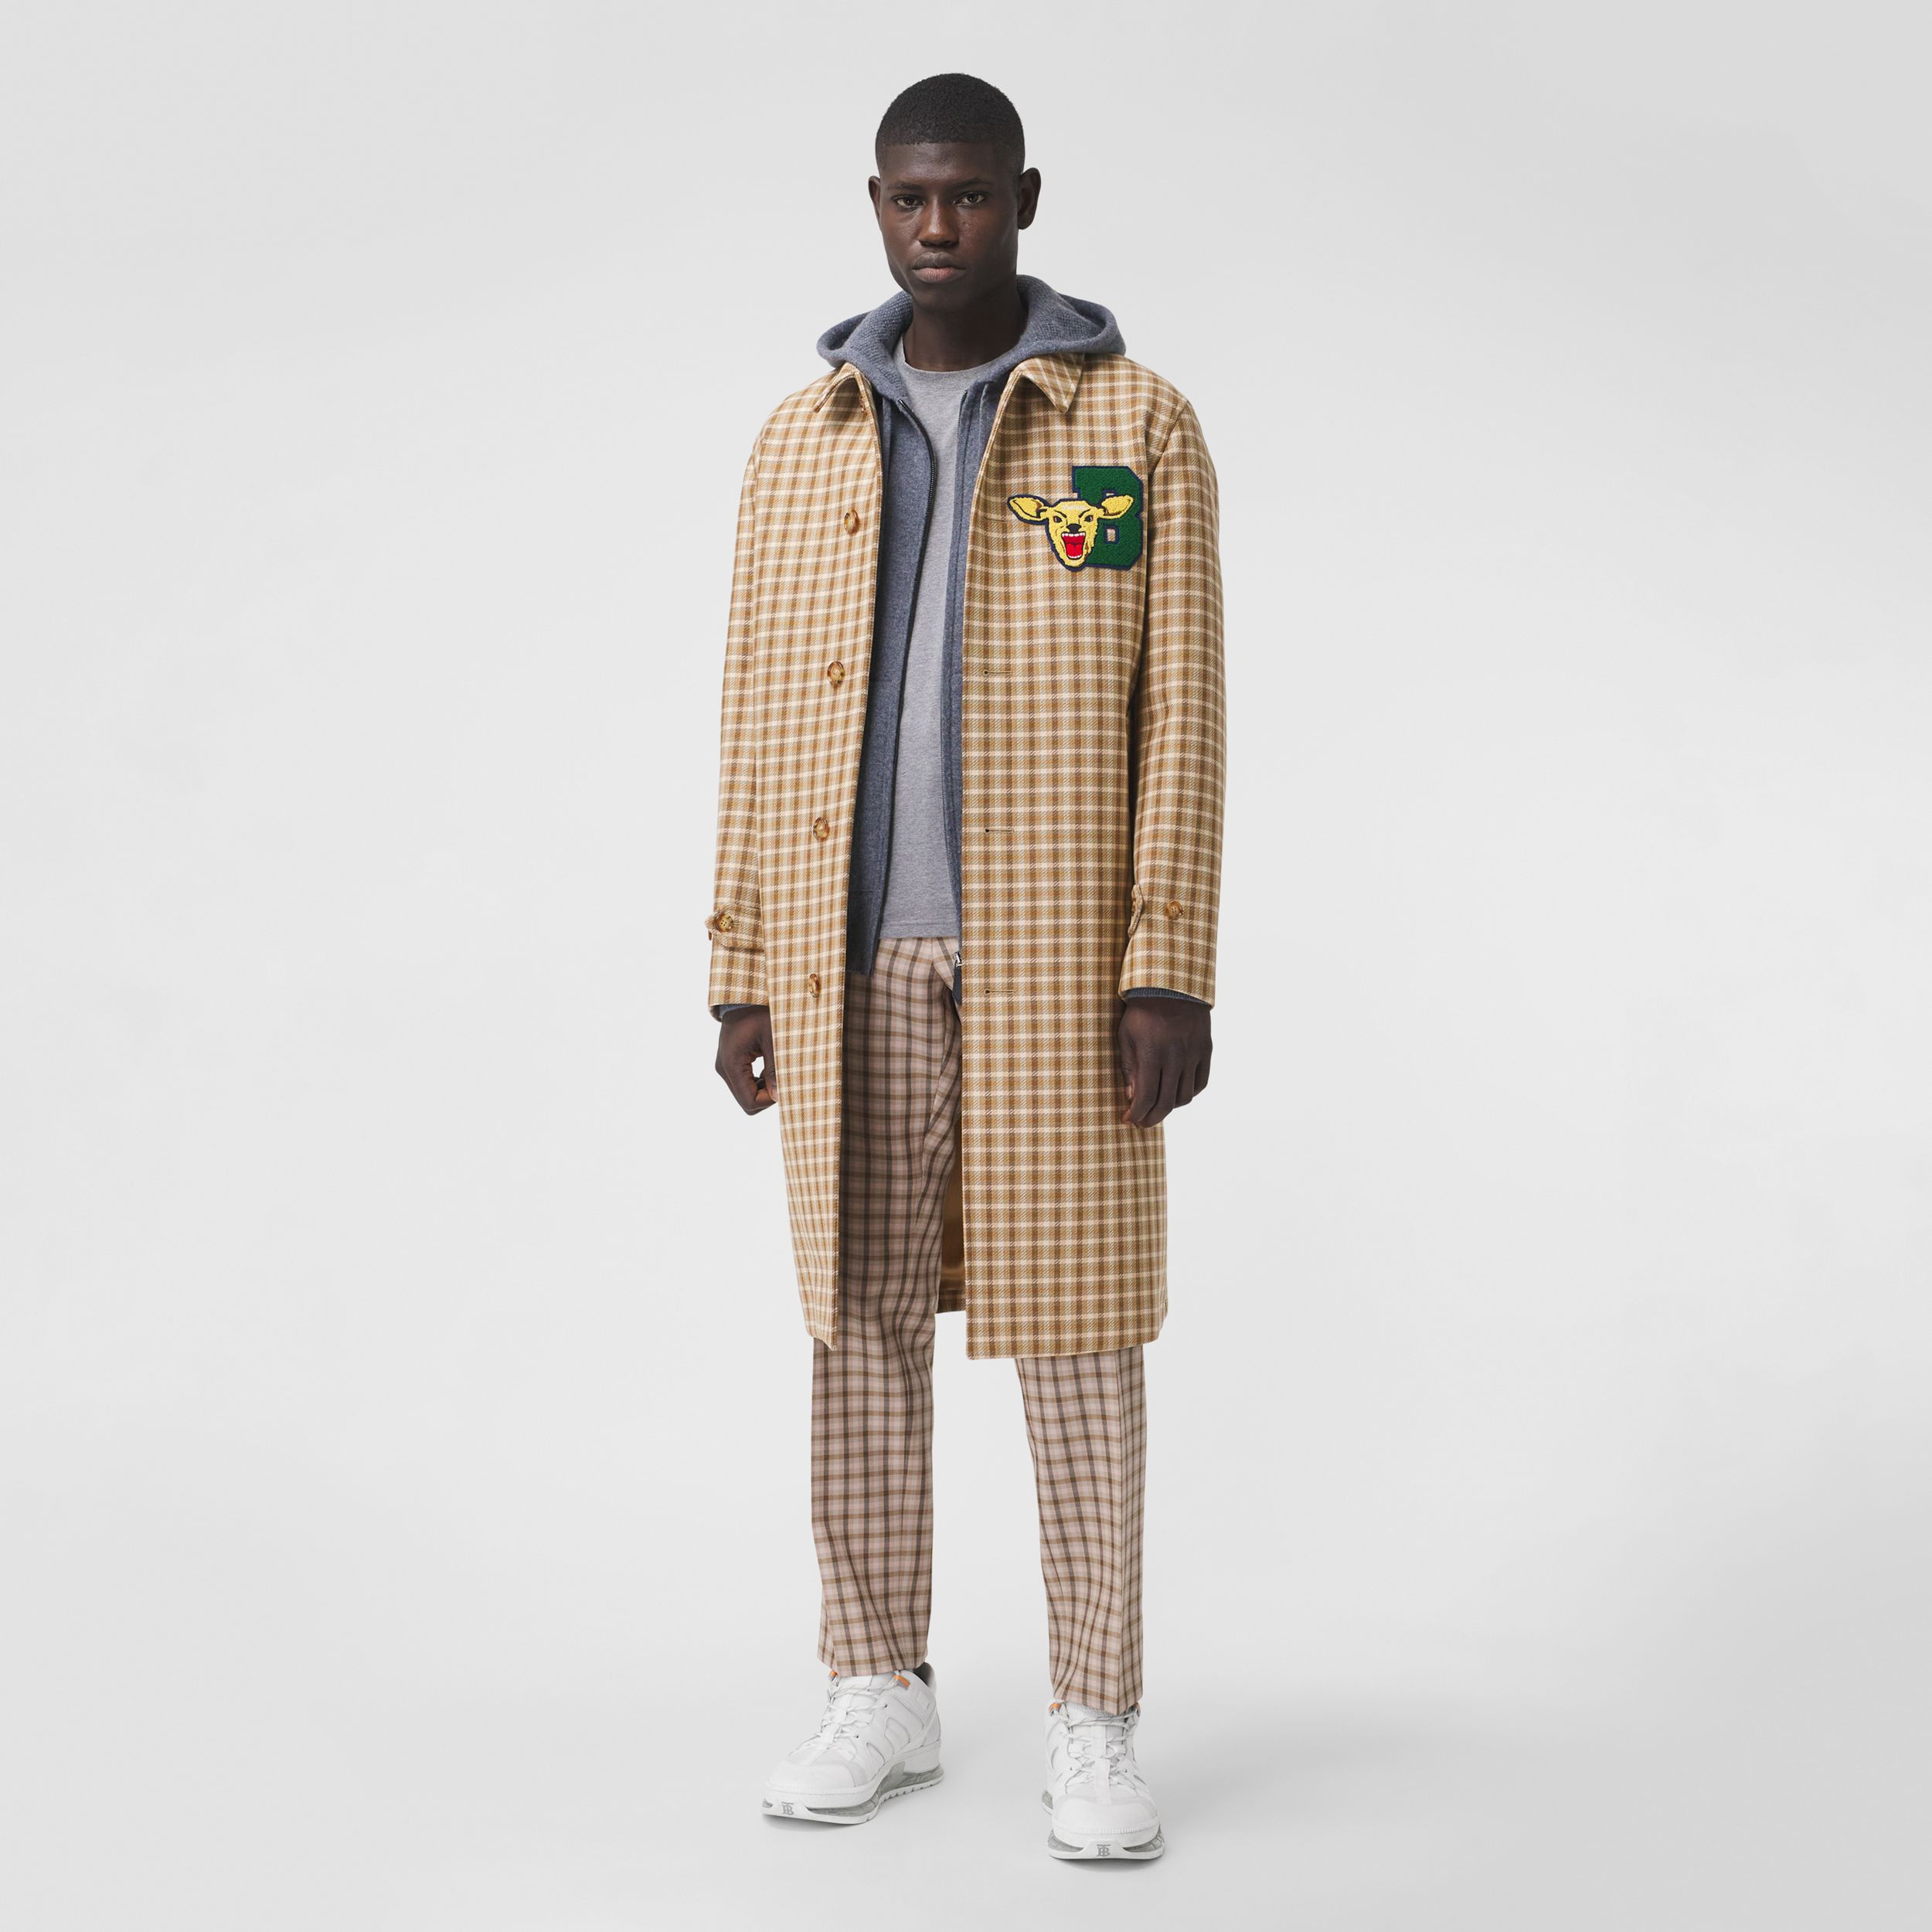 Varsity Graphic Check Bonded Cotton Car Coat in Soft Fawn - Men | Burberry - 1